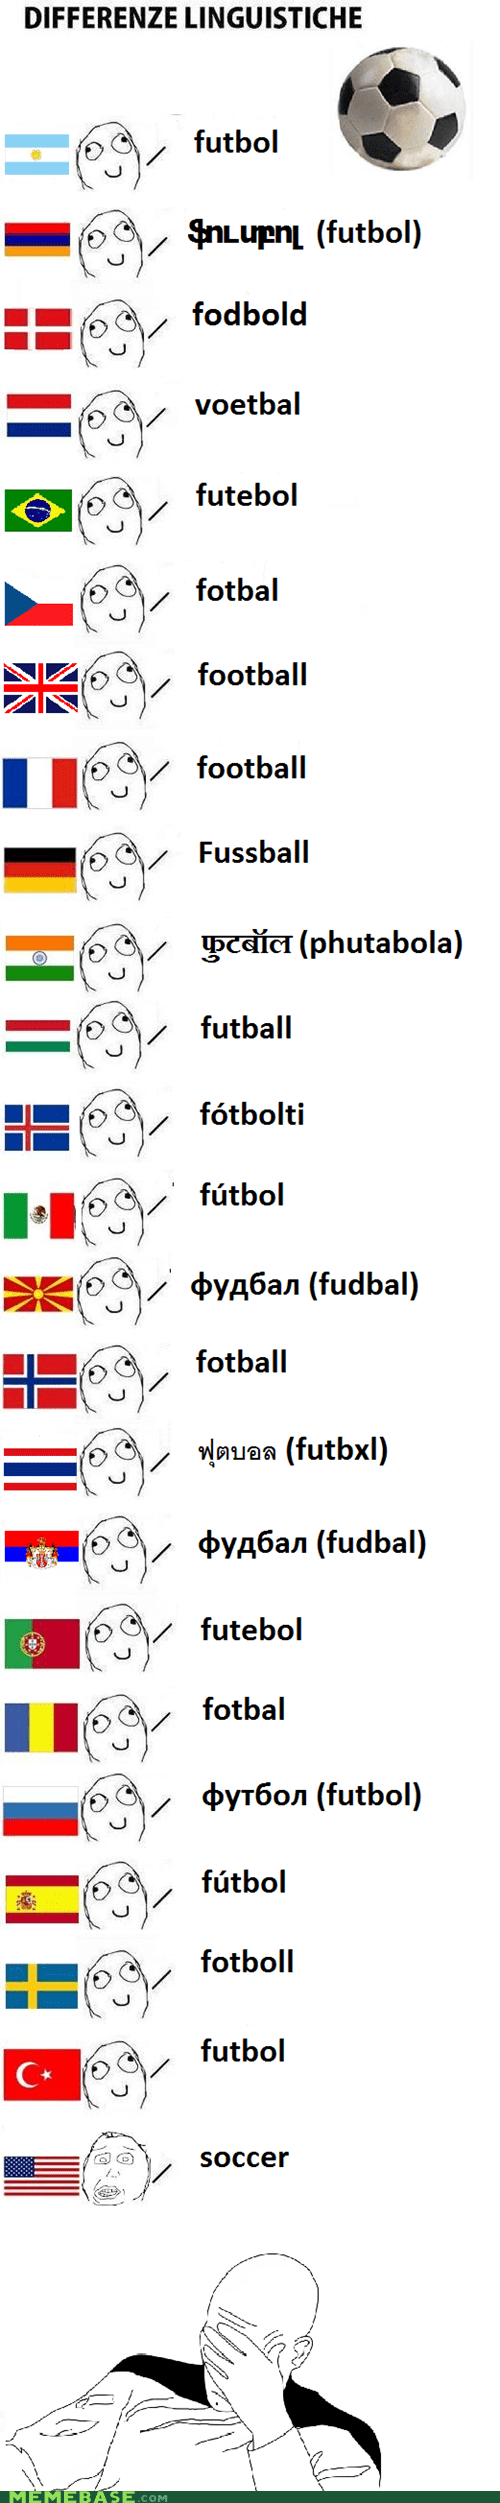 america different languages english football Rage Comics soccer - 6009608960